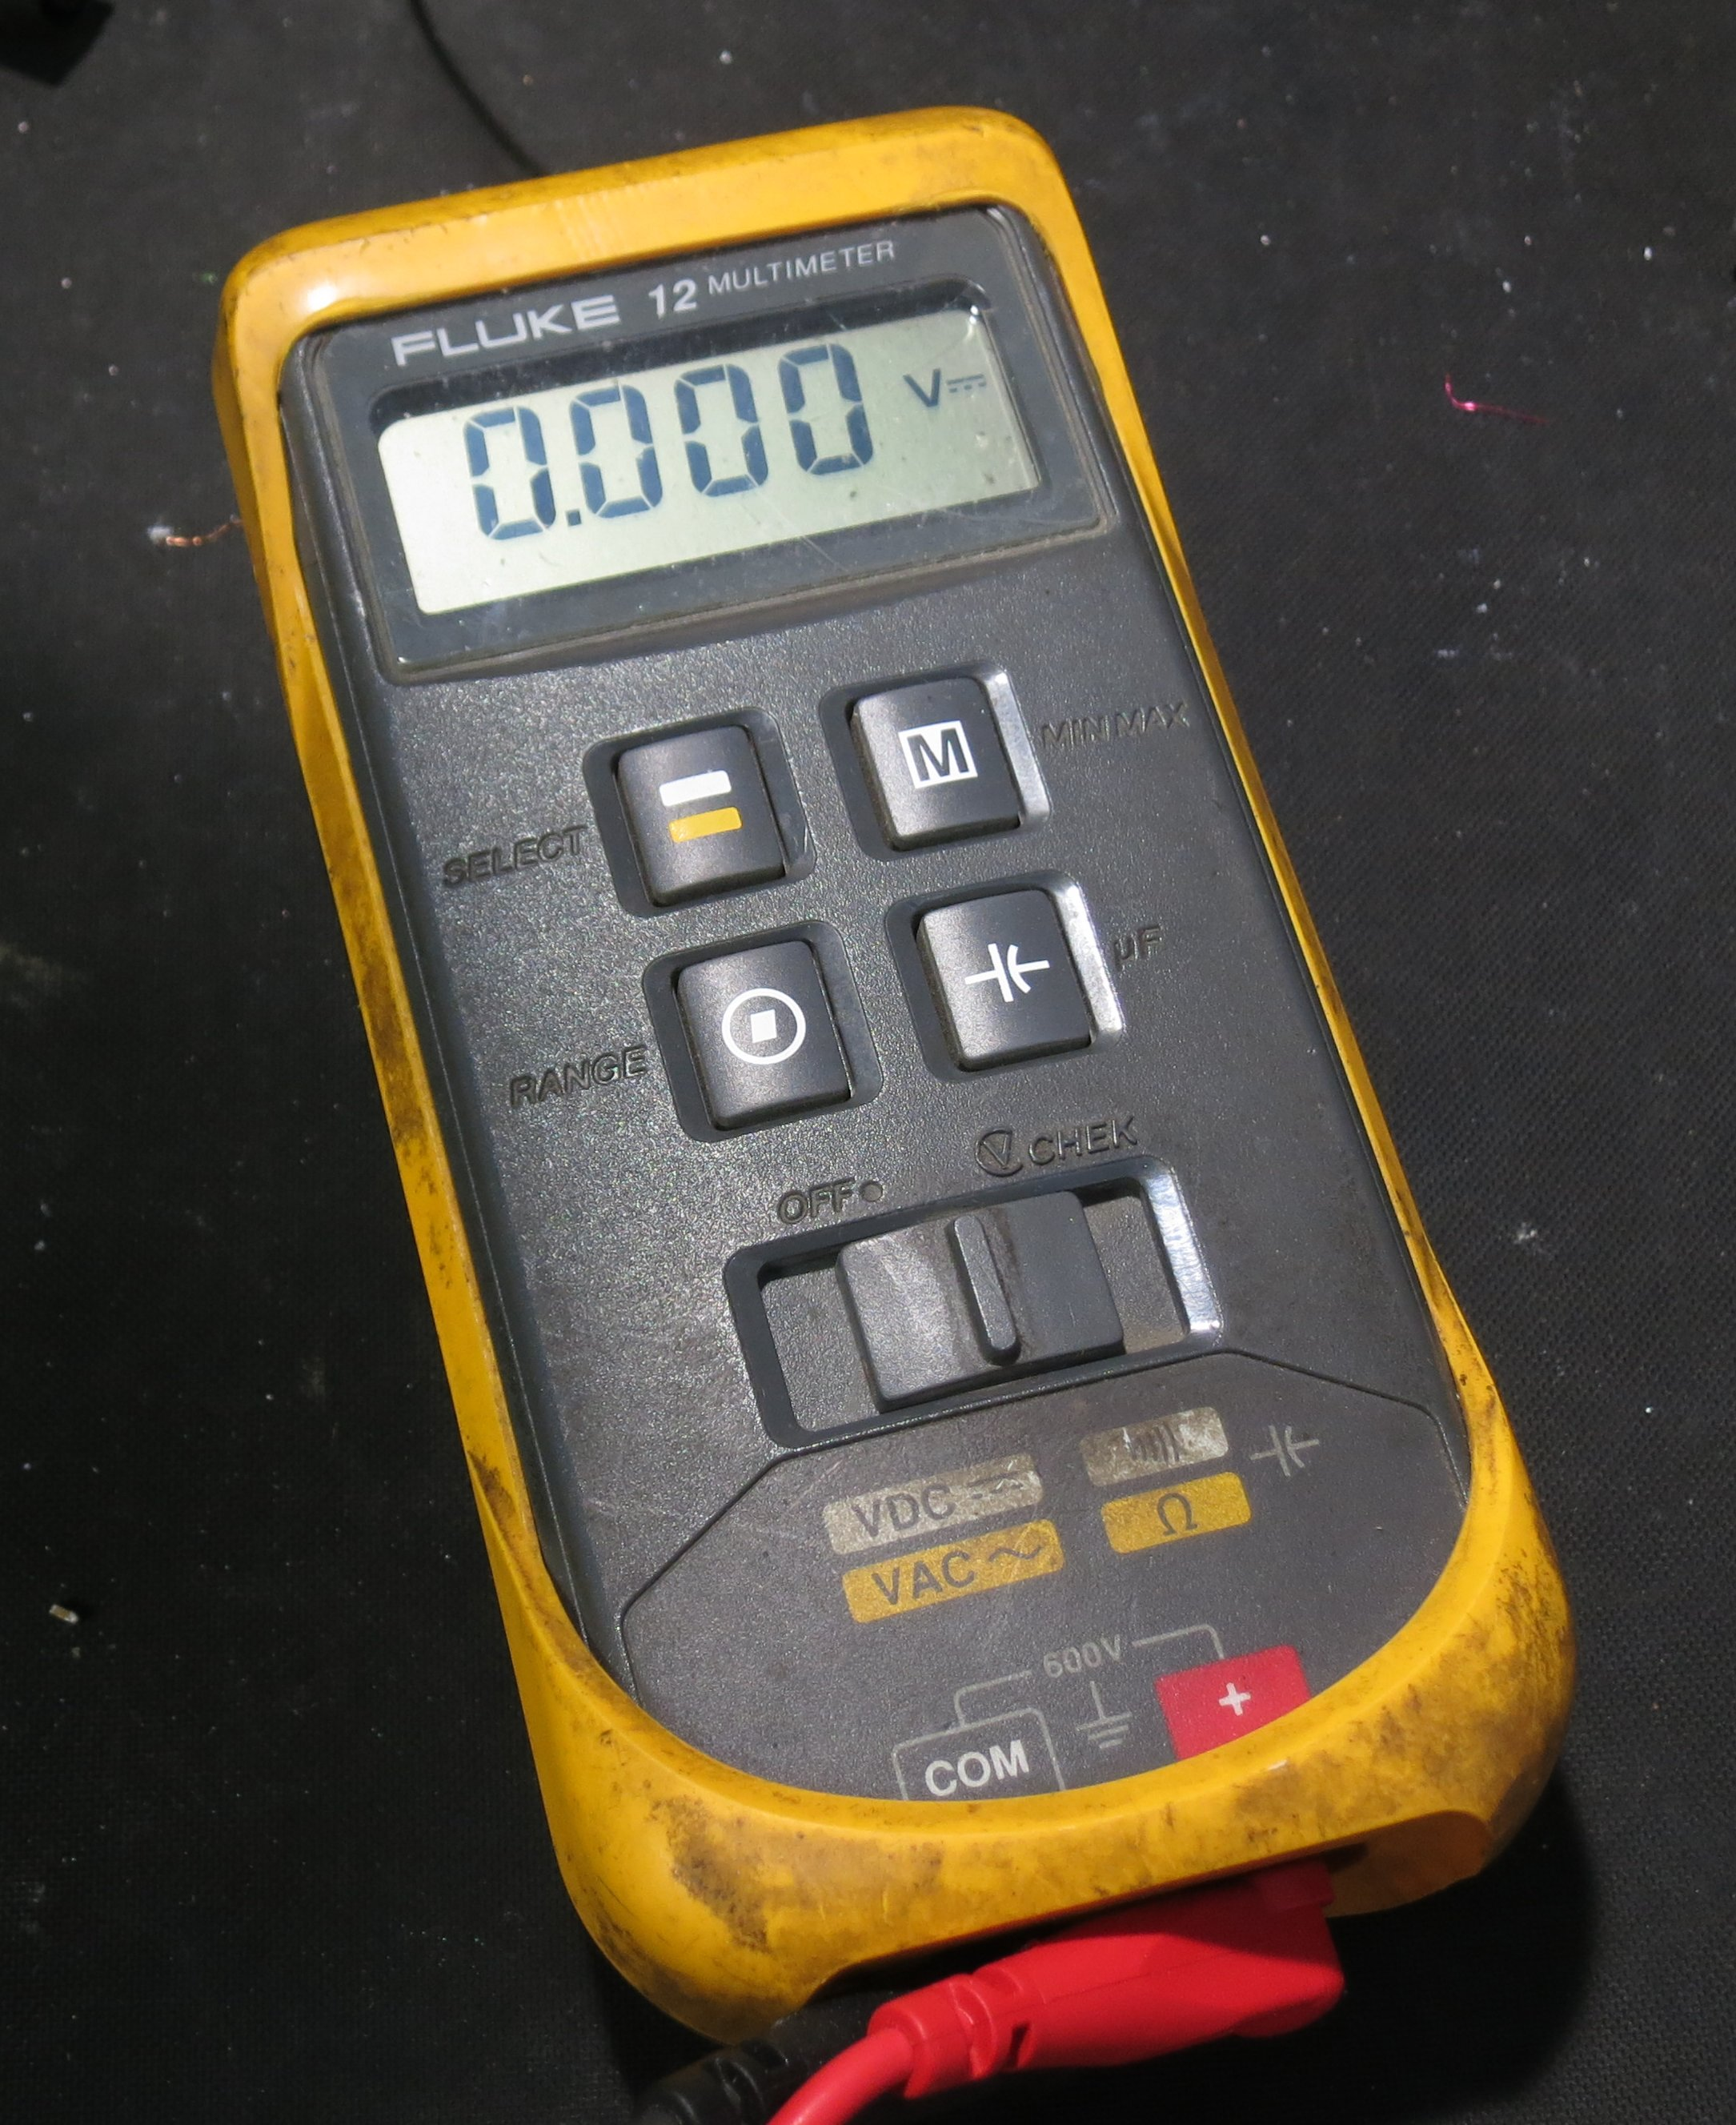 how to use a fluke 12 multimeter